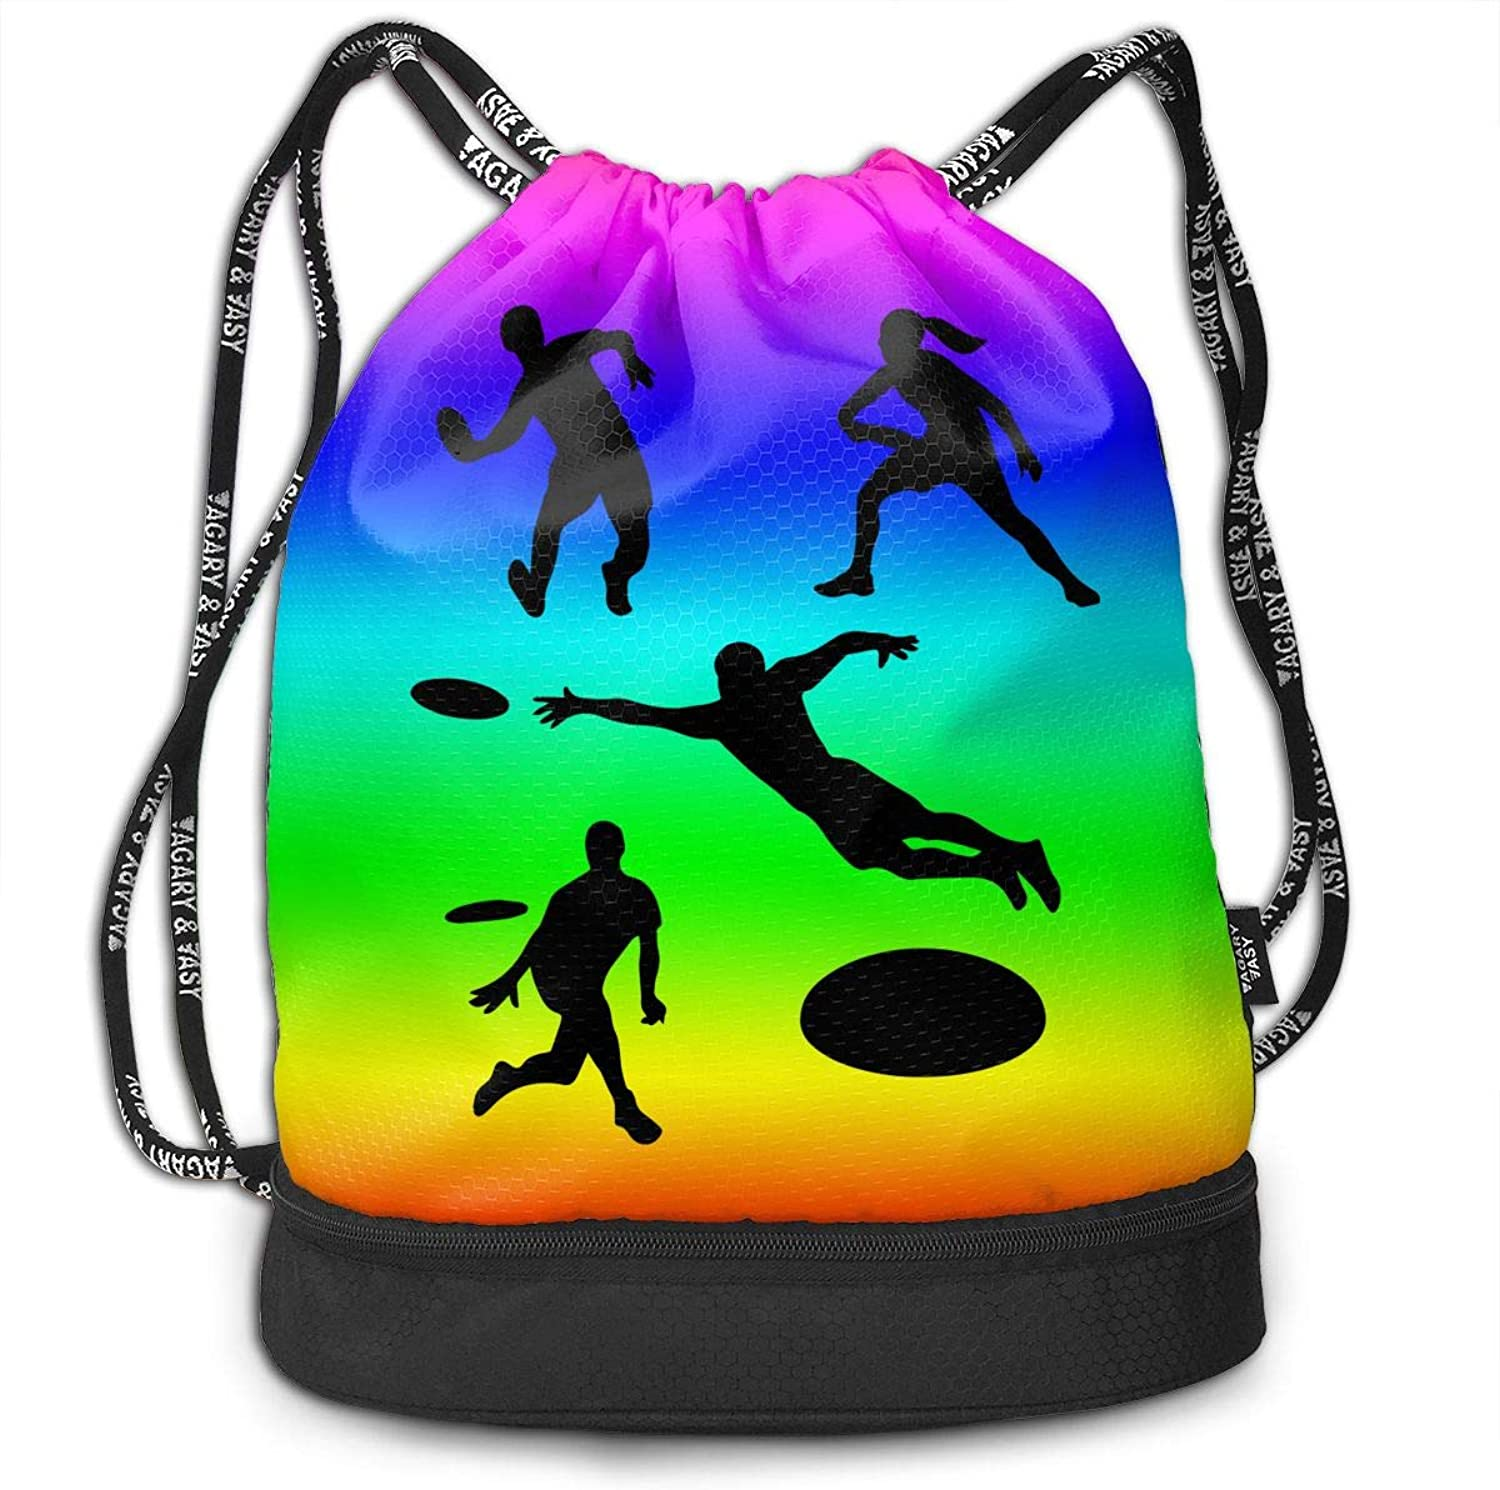 Drawstring Backpack Playing Ultimate Frisbee Silhouettes Rucksack